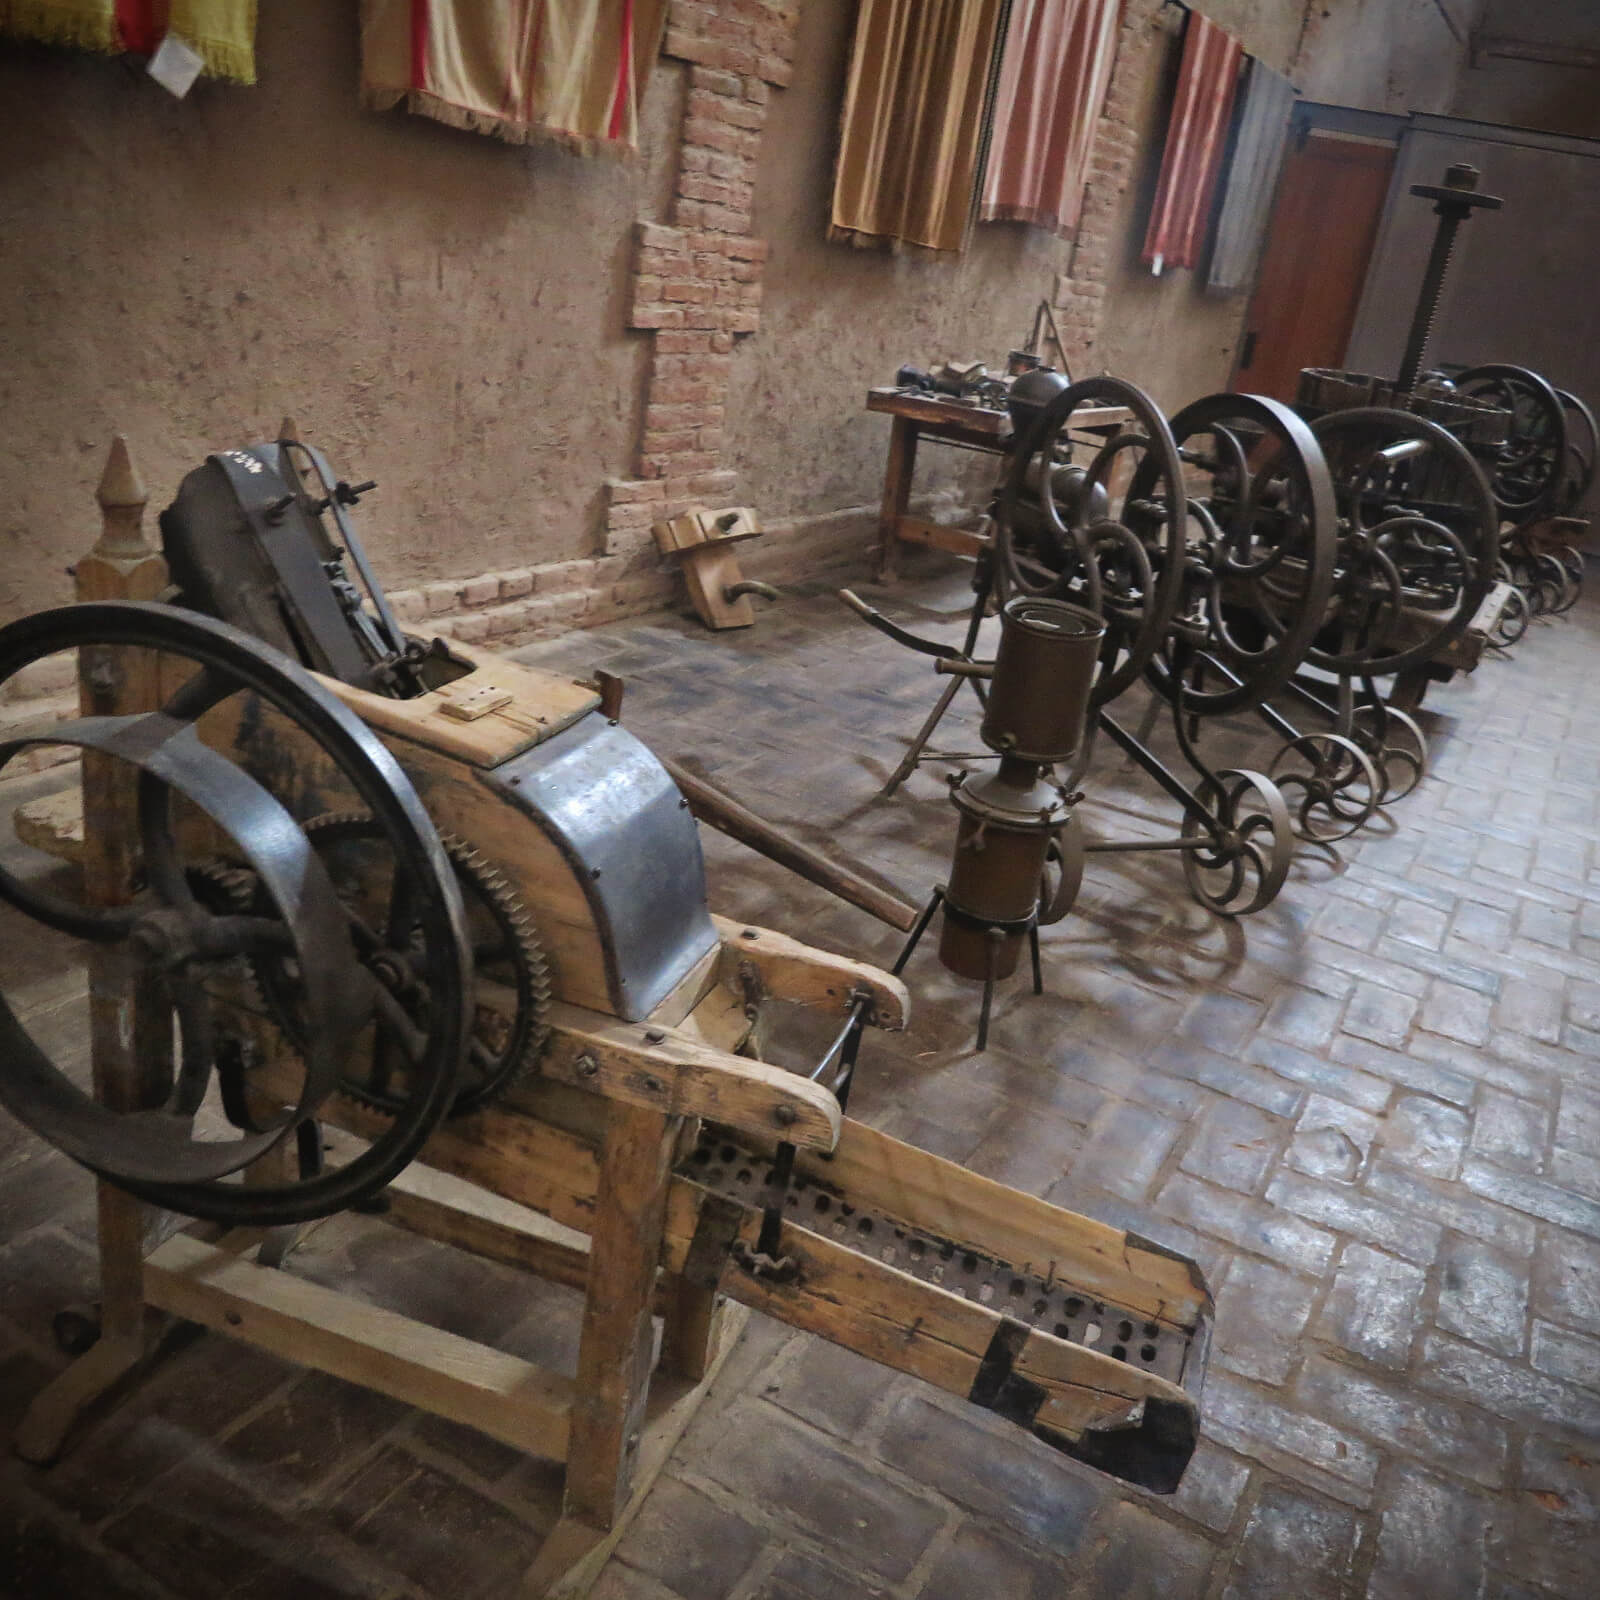 Ancient wine machinery and historical ponchos on display in Mendoza, Argentina during our tour with Mendoza Wine Camp.